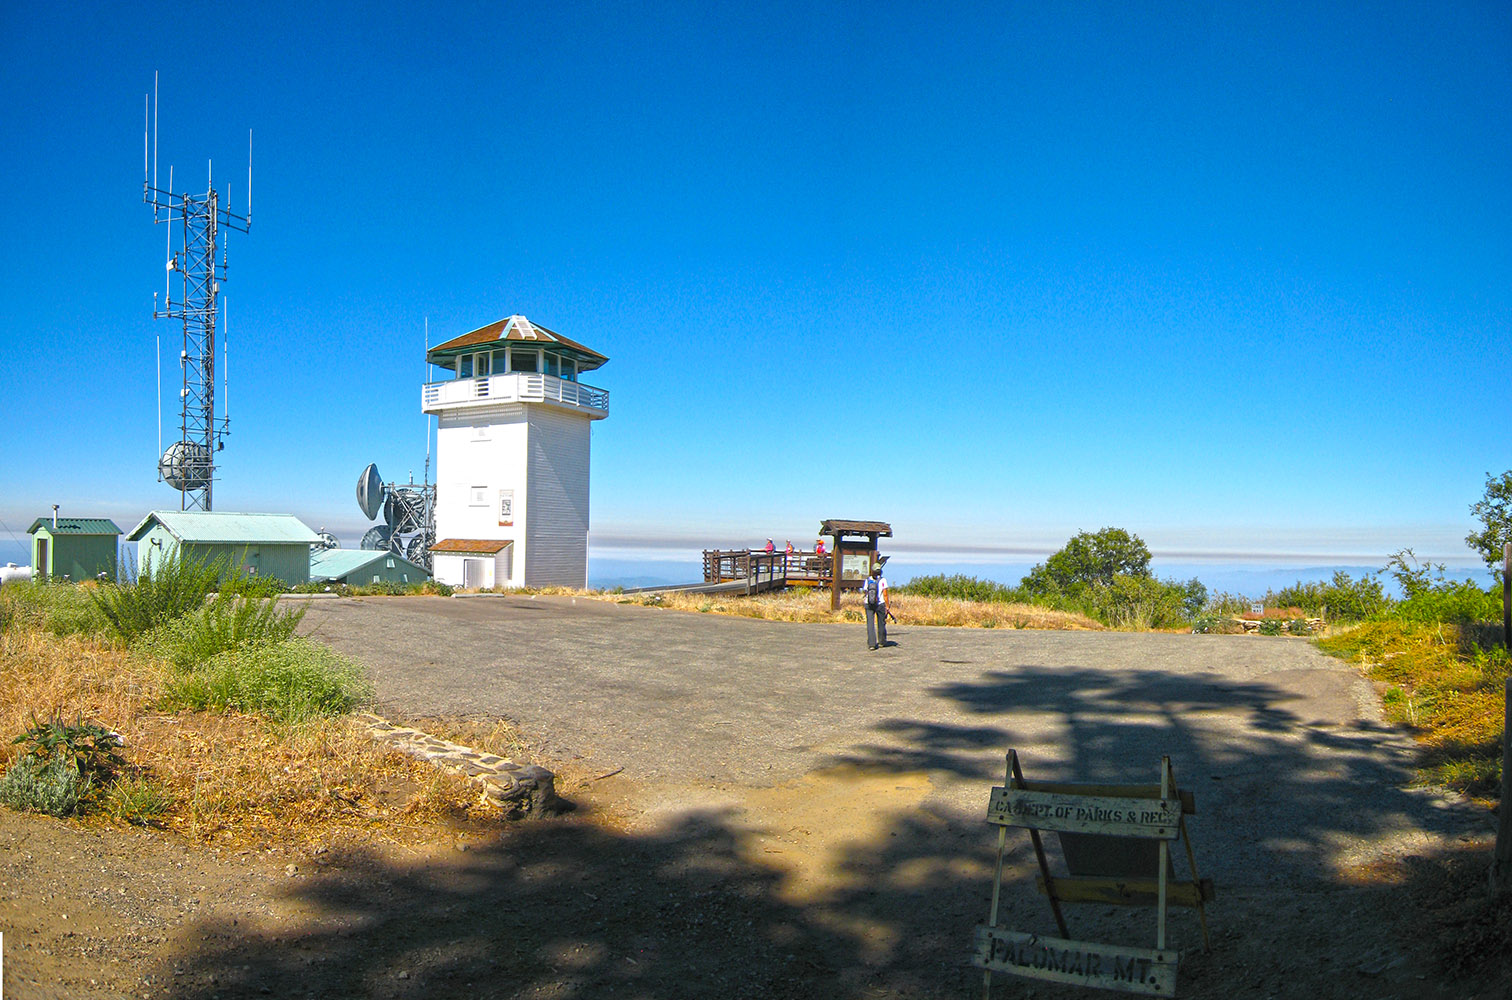 Boucher Hill Fire Lookout Tower